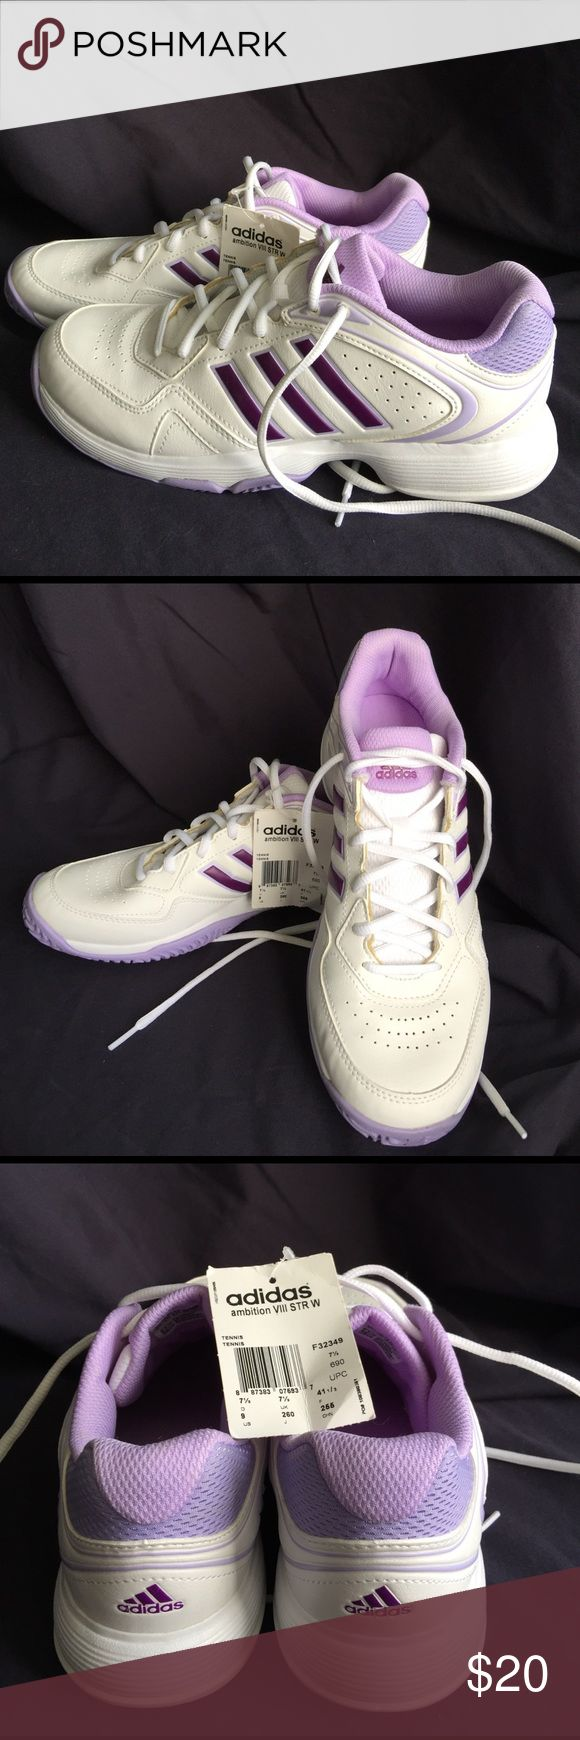 New, Adidas Ambition Vlll STR Tennis sneakers New, never worn, tennis sneakers. White w/ purple trim Adidas Shoes Athletic Shoes